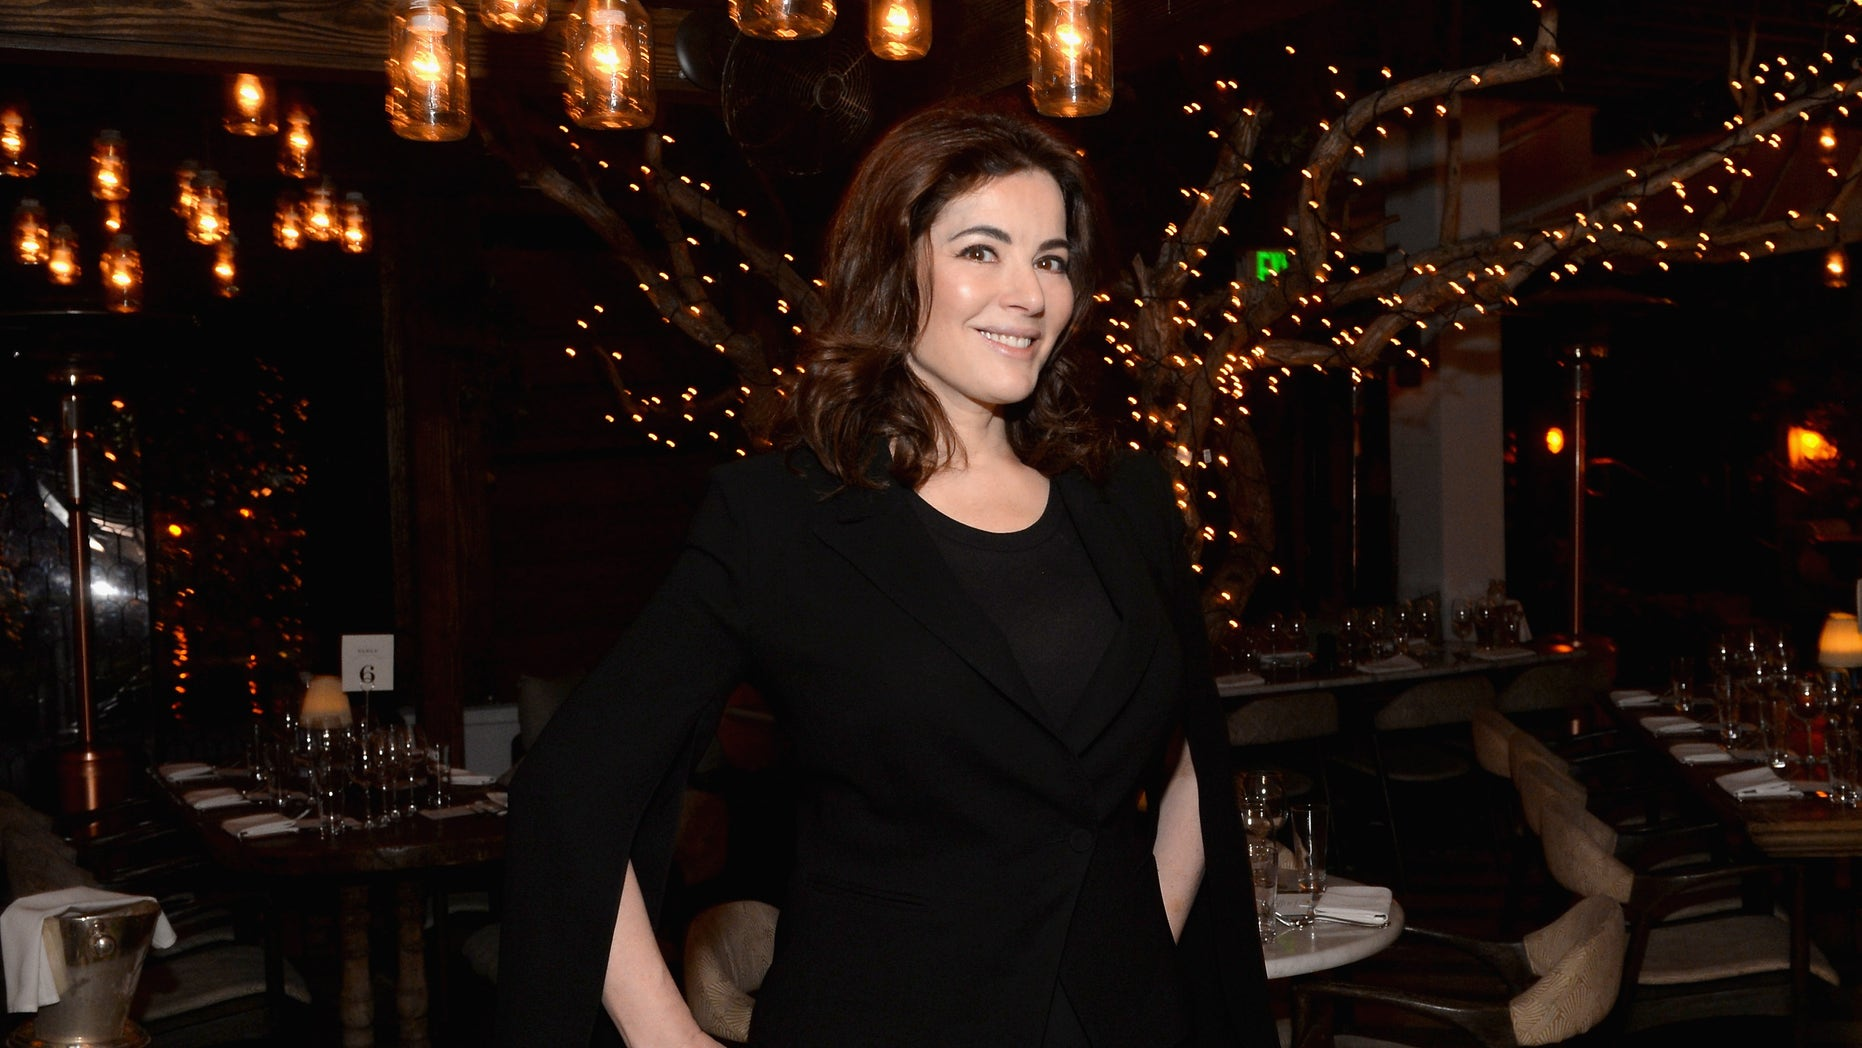 Nigella Lawson revealed she's had to tell U.S. television stations to stop airbrushing her stomach.